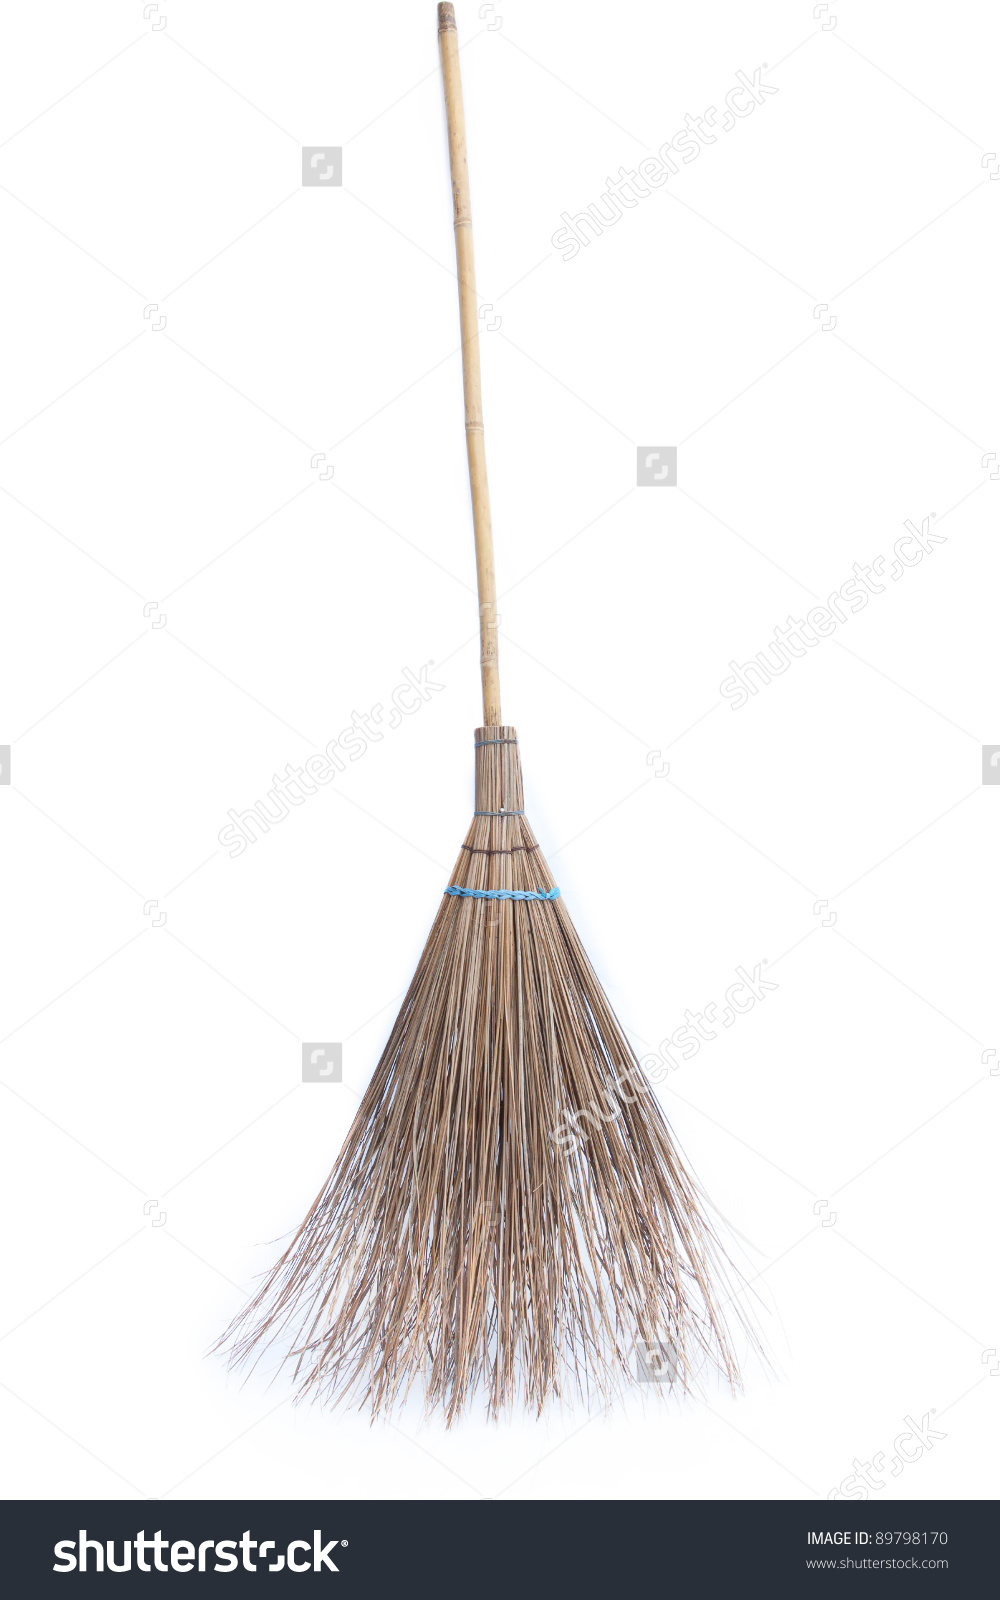 Coconut Leave Broom Isolated Stock Photo 89798170.